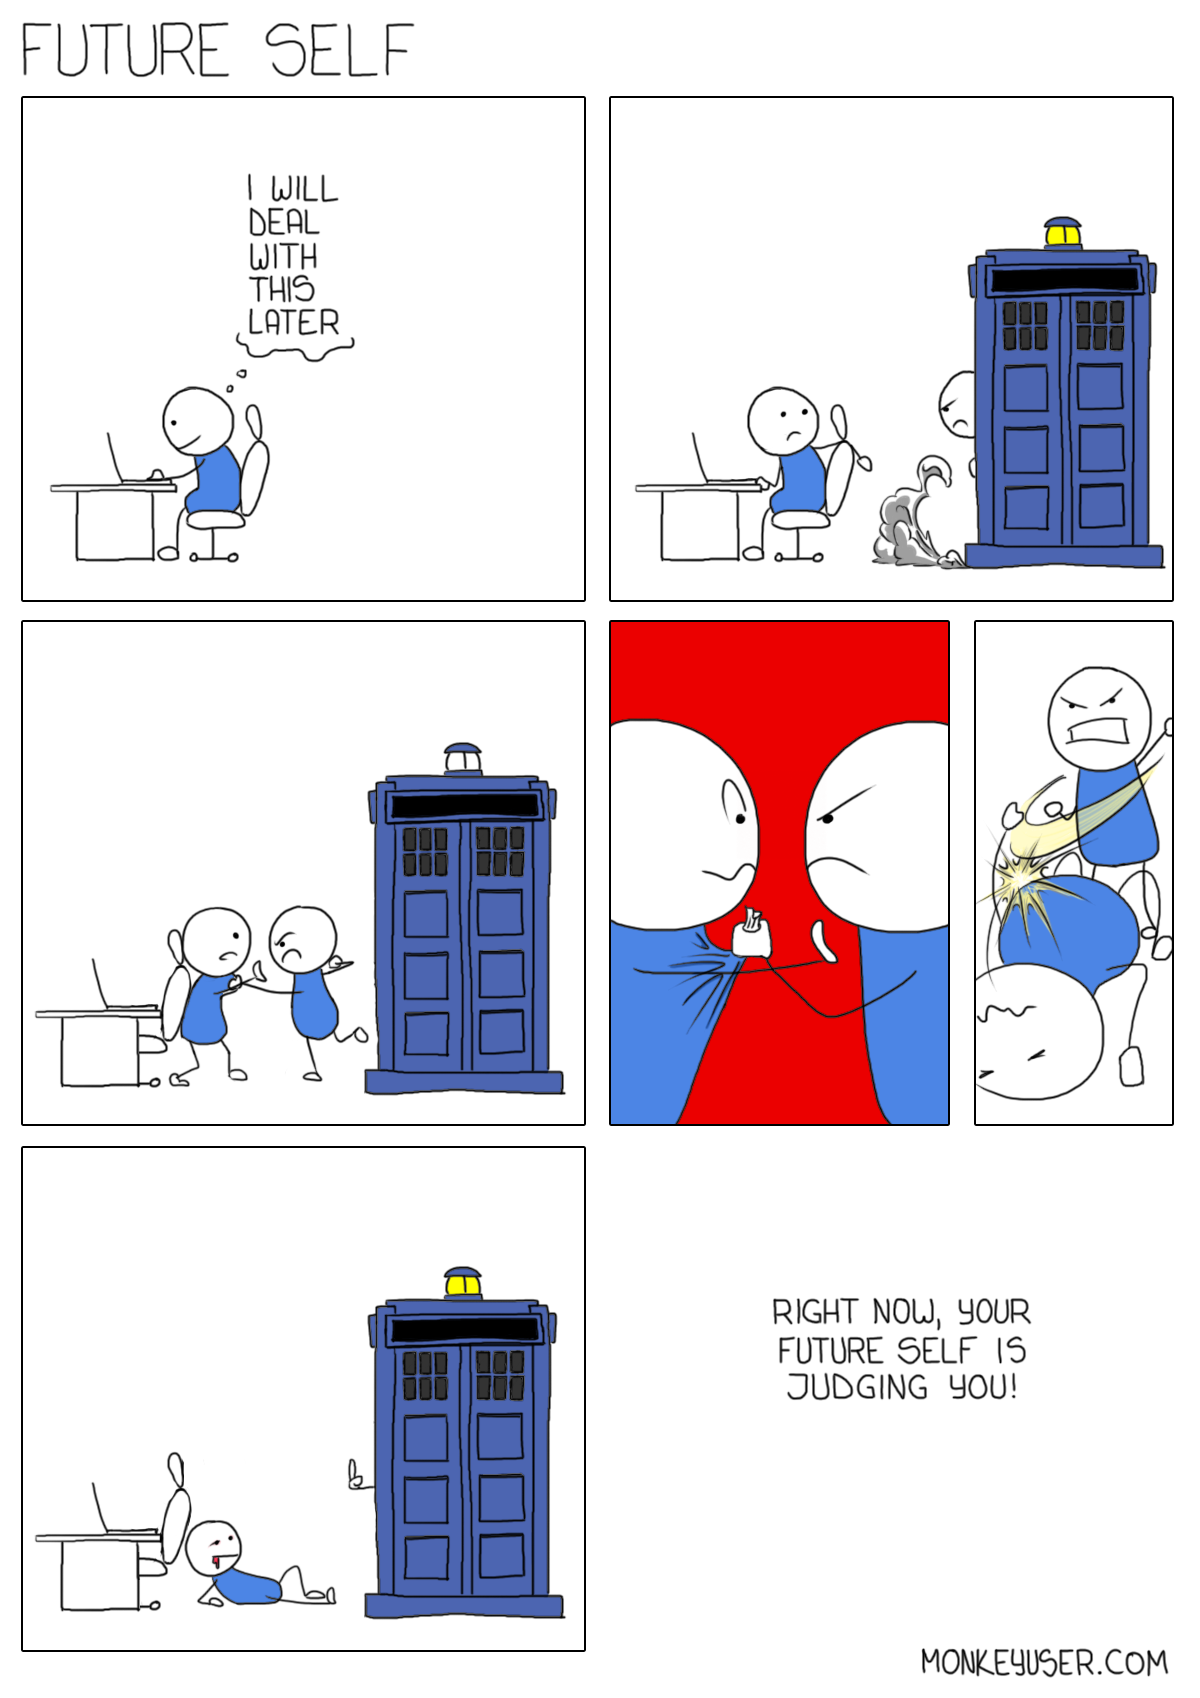 Be careful with that last commit. Time travel might be just around the corner